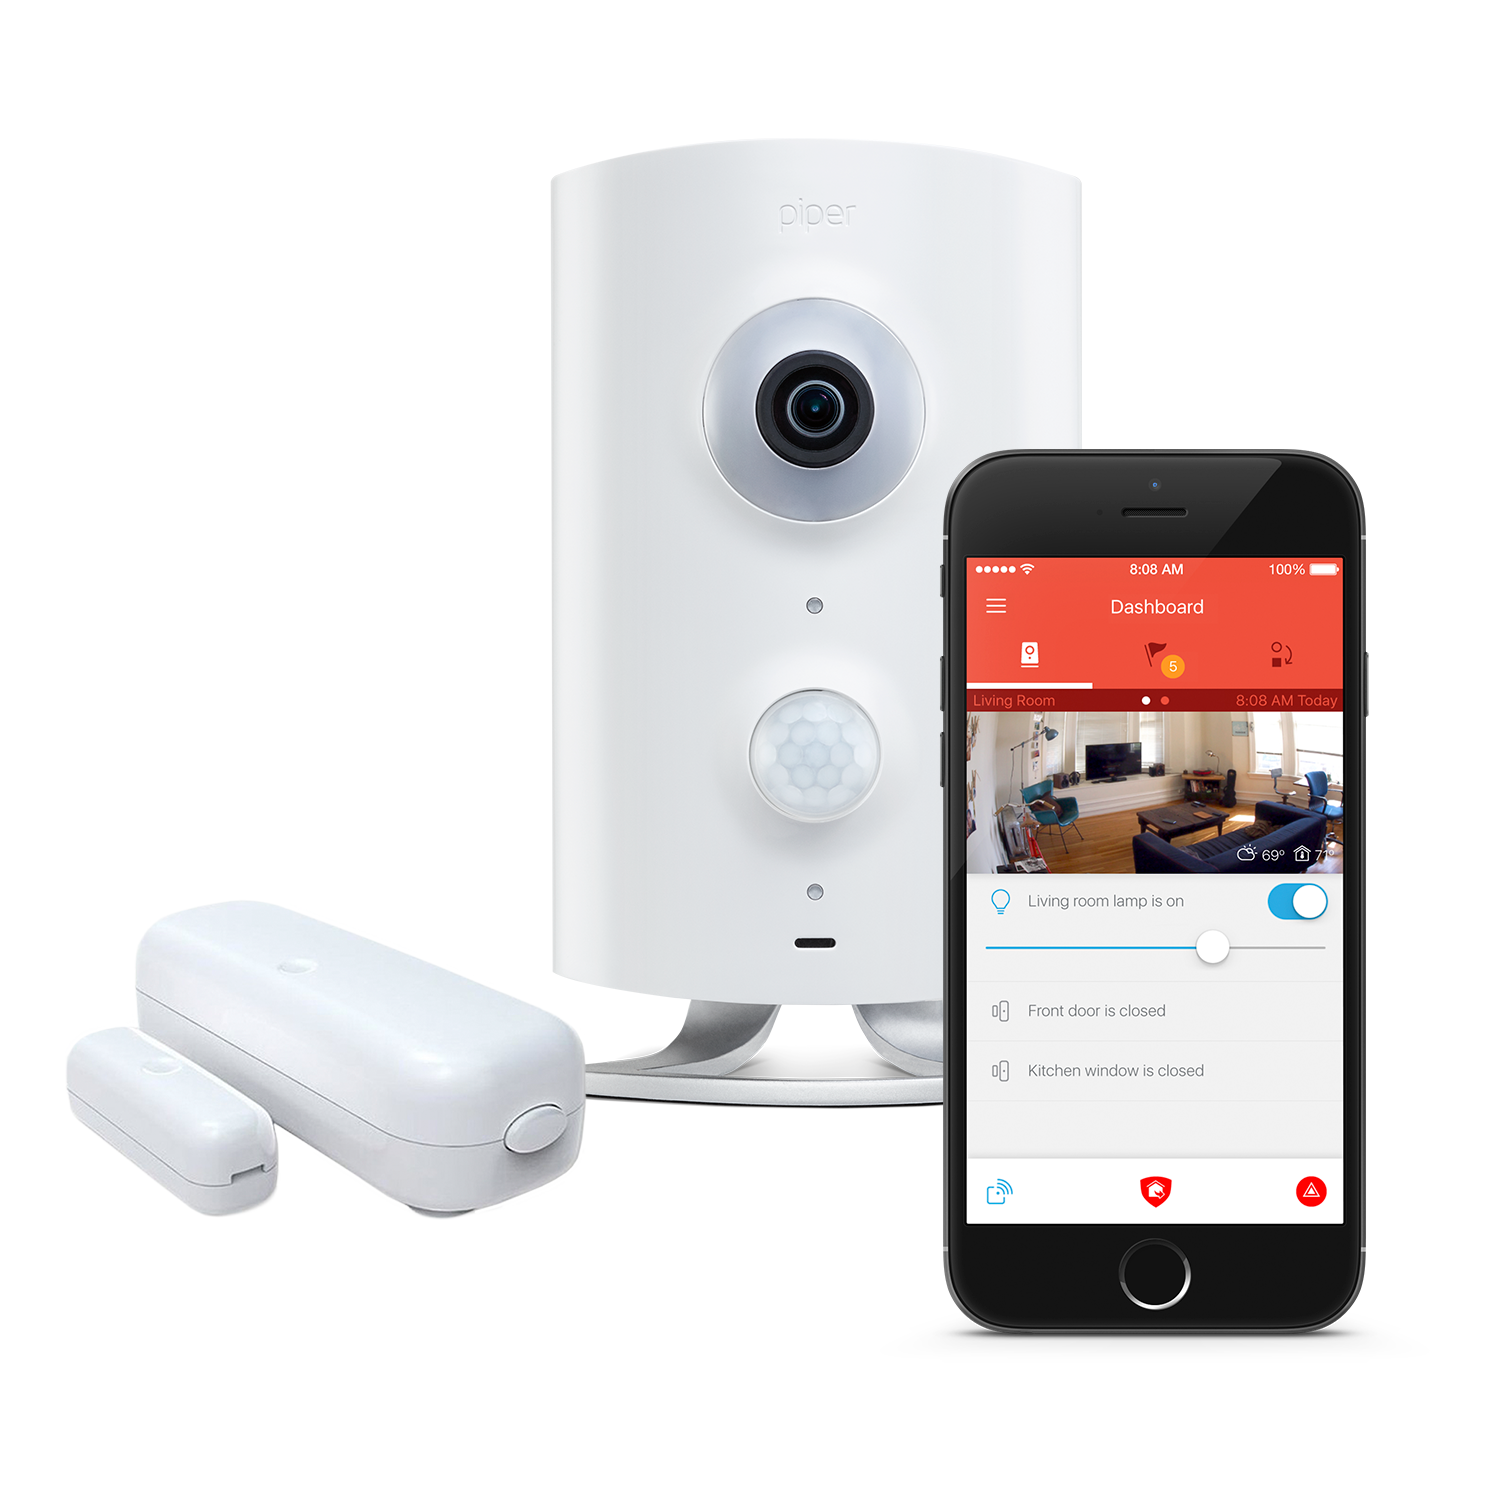 The Best Wi Fi Home Or Office Wireless Security Camera Home Automation System Piper Wireless Home Security Home Security Systems Wireless Security Cameras